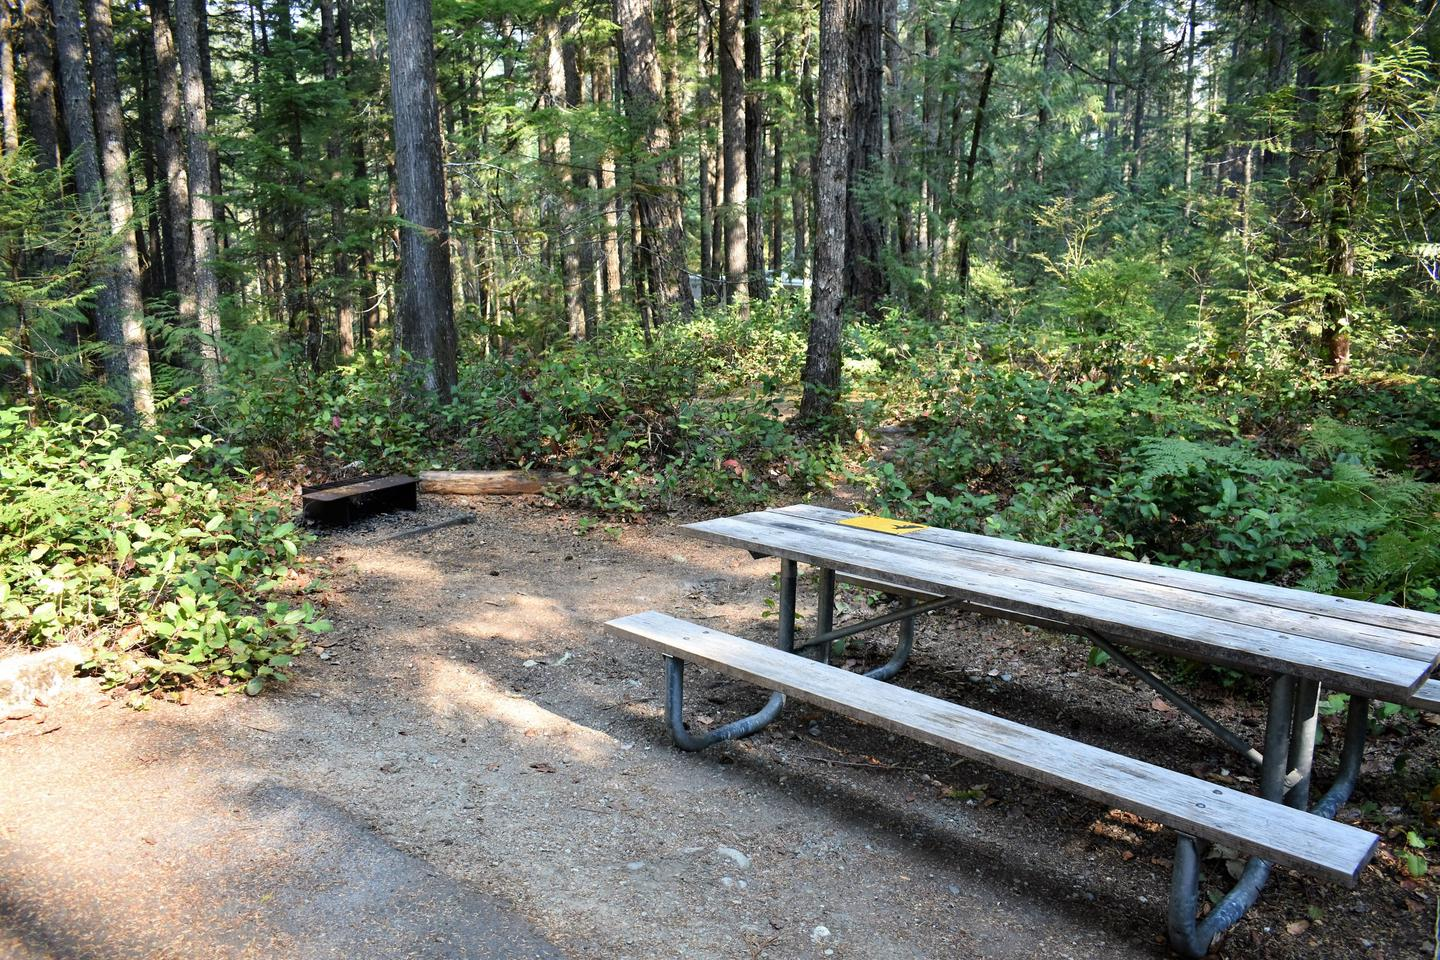 Fire ring and picnic tableView of campsite